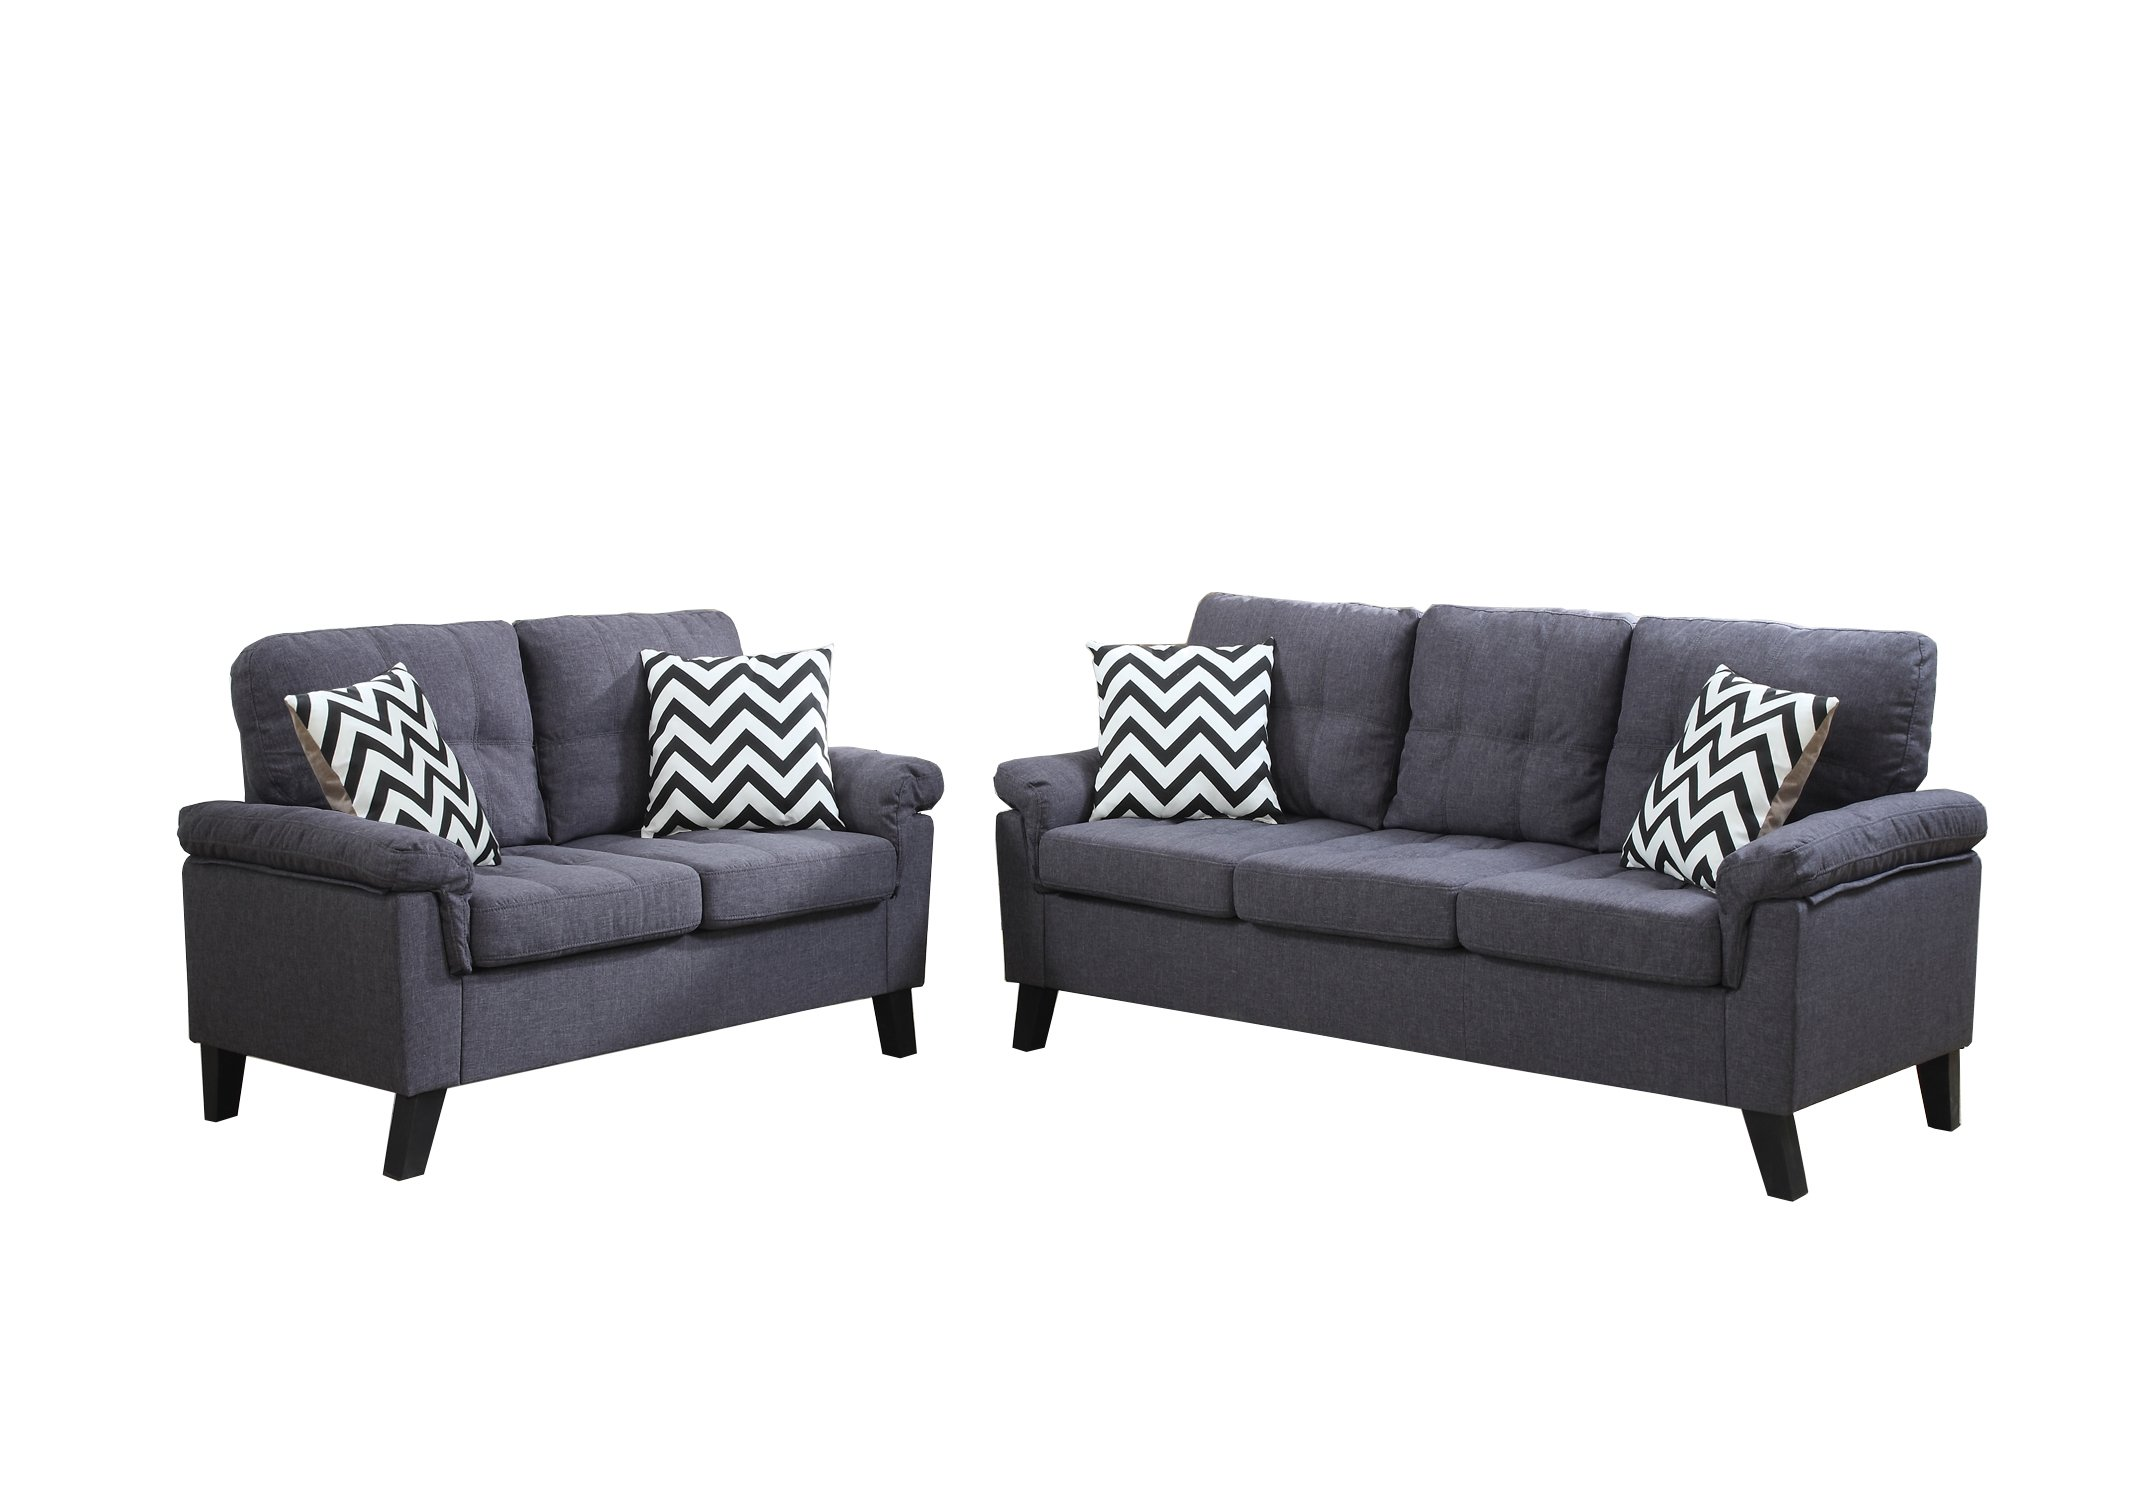 Poundex F6905 Bobkona Tyler Linen-Like 2 Piece Sofa and Loveseat Set, Blue Grey by Poundex